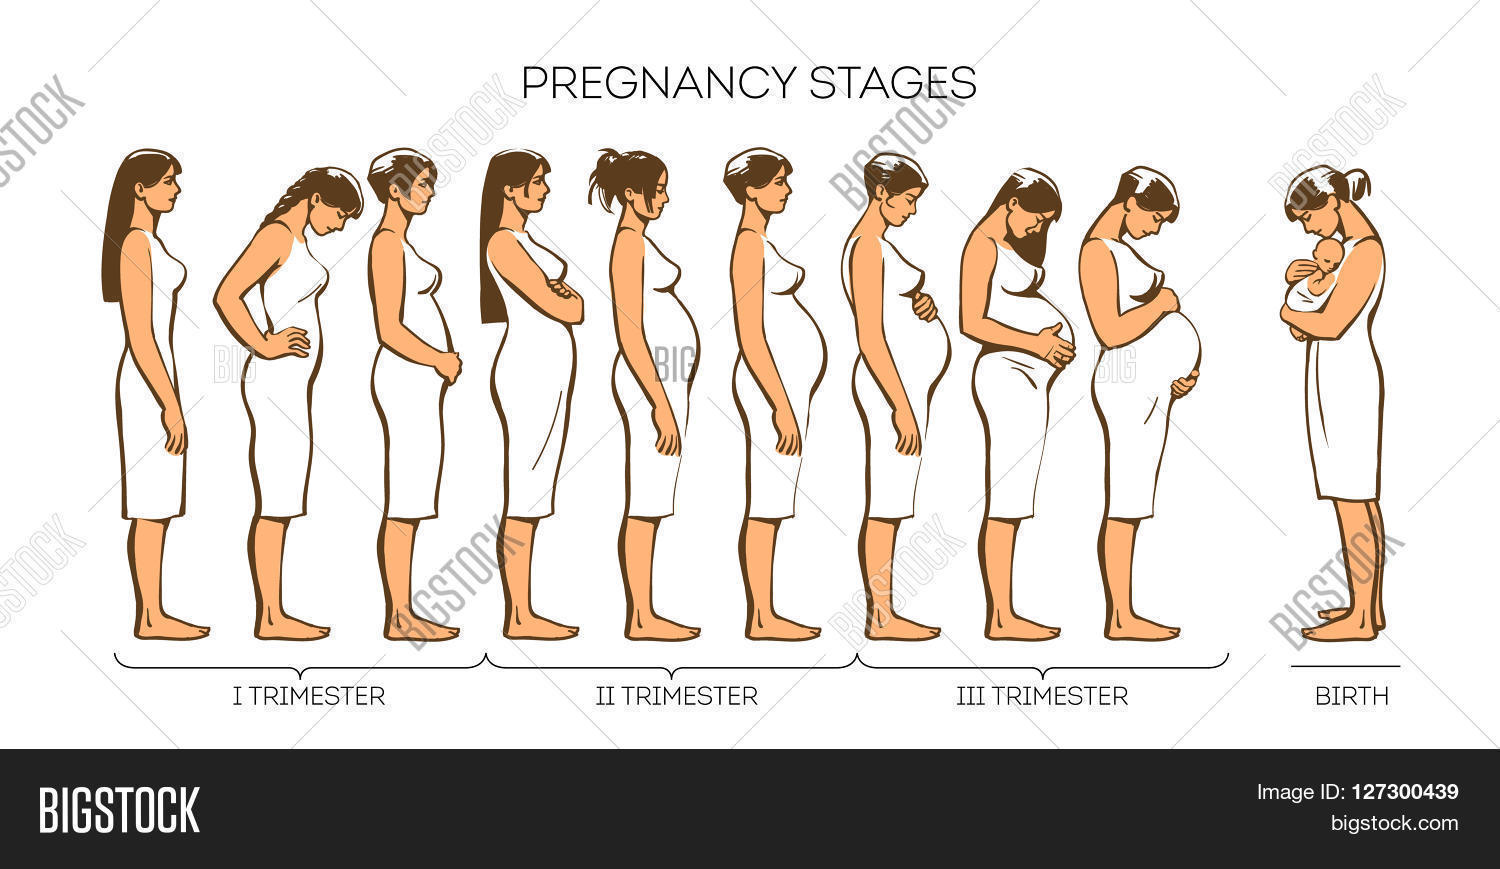 Stages Pregnancy Different Women Image Photo Bigstock